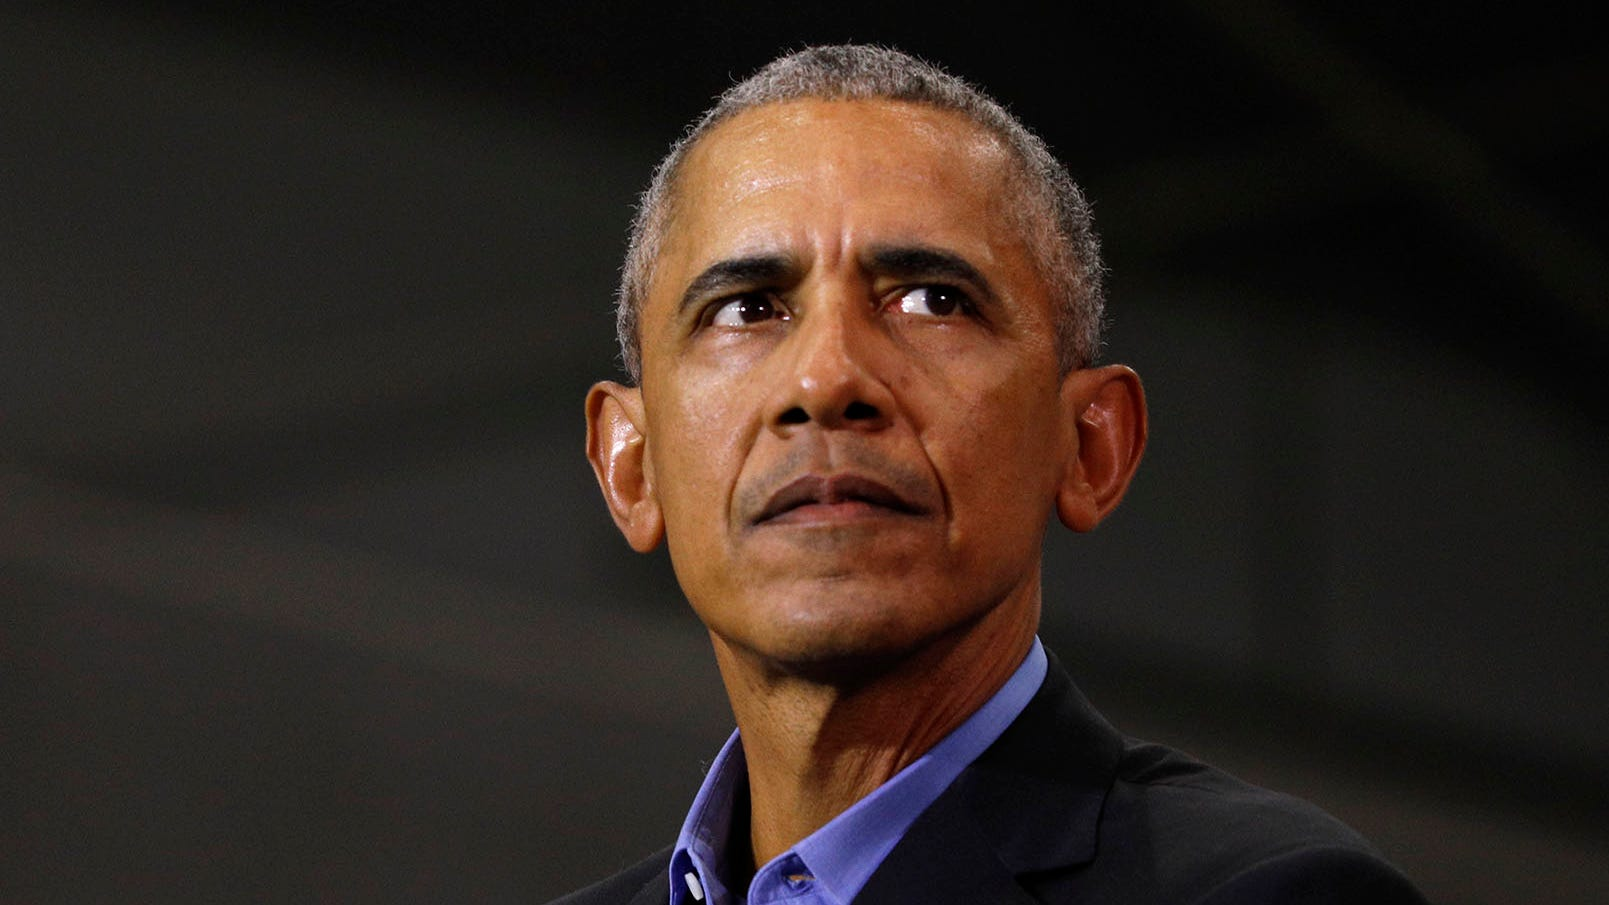 Former President Barack Obama speaks at a rally to support Michigan democratic candidates at Detroit Cass Tech High School on Oct. 26, 2018, in Detroit.